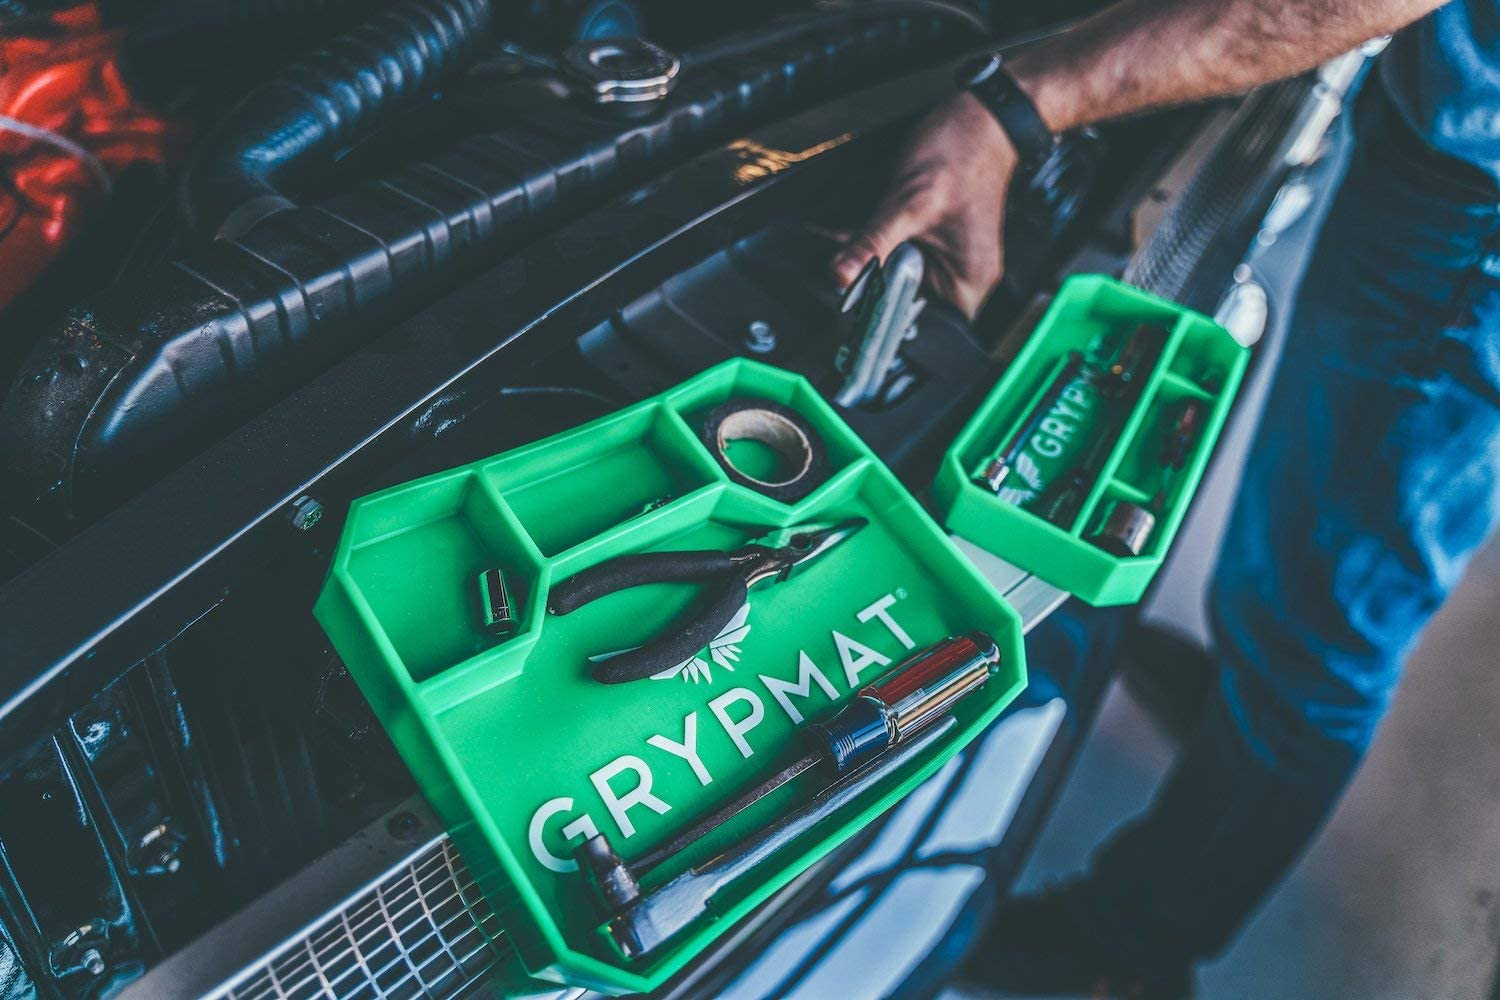 Small Grypmat Automotive /& DIYer Non-slip Non-magnetic Tool Box Organizer Optimize Workflow with Tool Tray Green Color Grip Mat